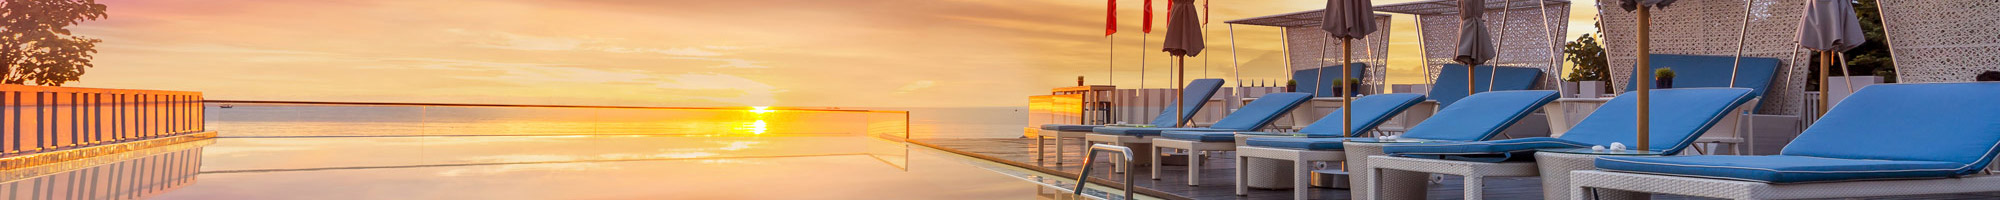 Hoteles de Choice Hotels en Wollongong